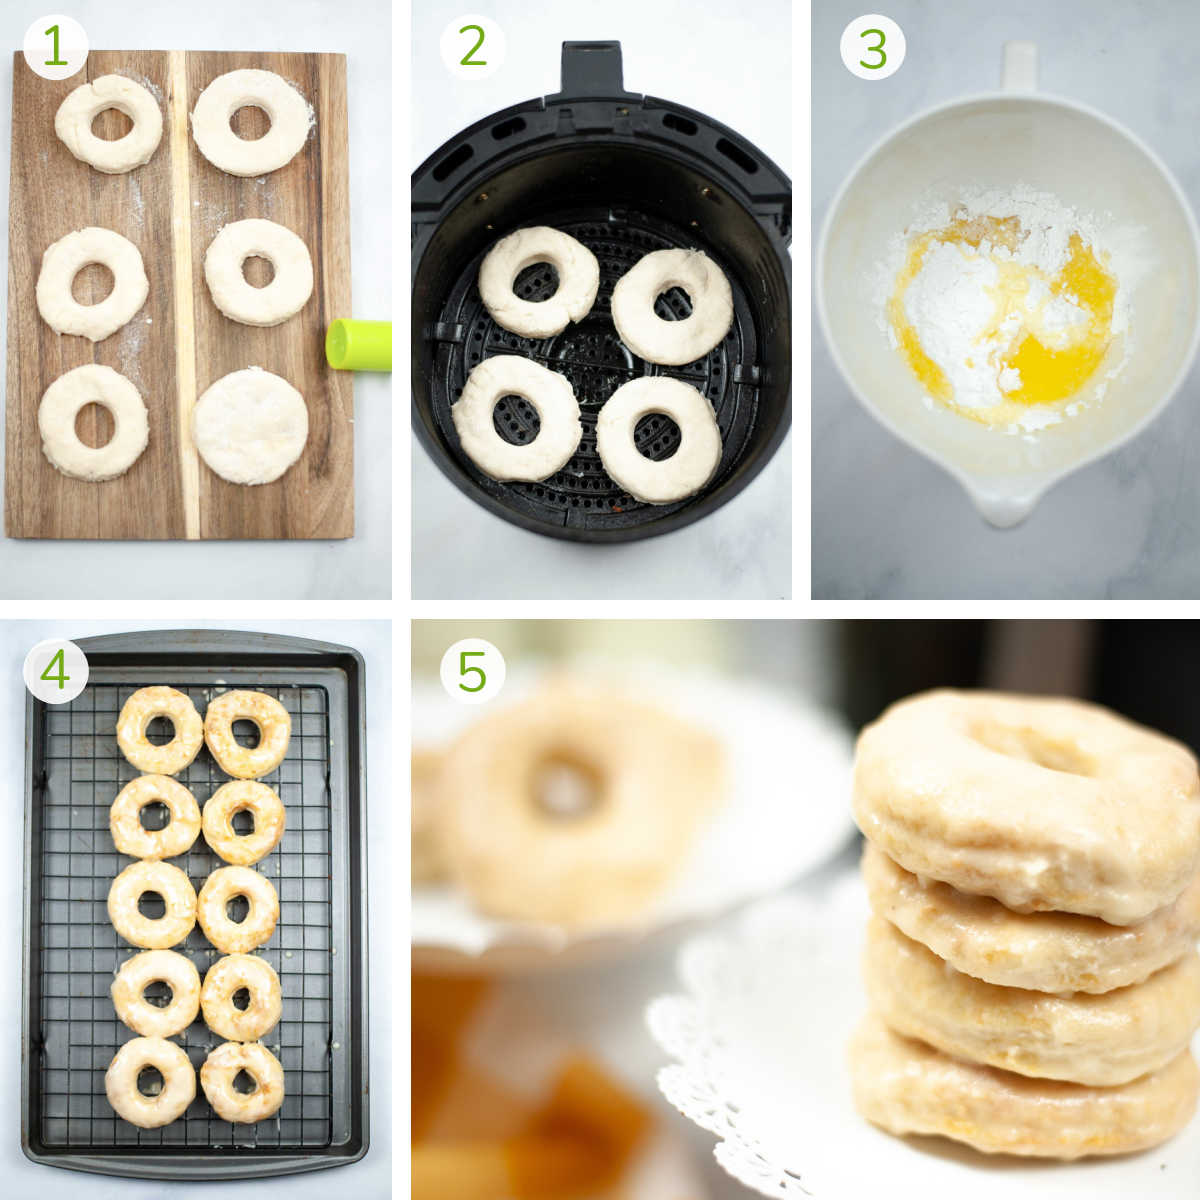 process photos showing cutting out the donut holes from the biscuits, air frying them and adding a glaze.